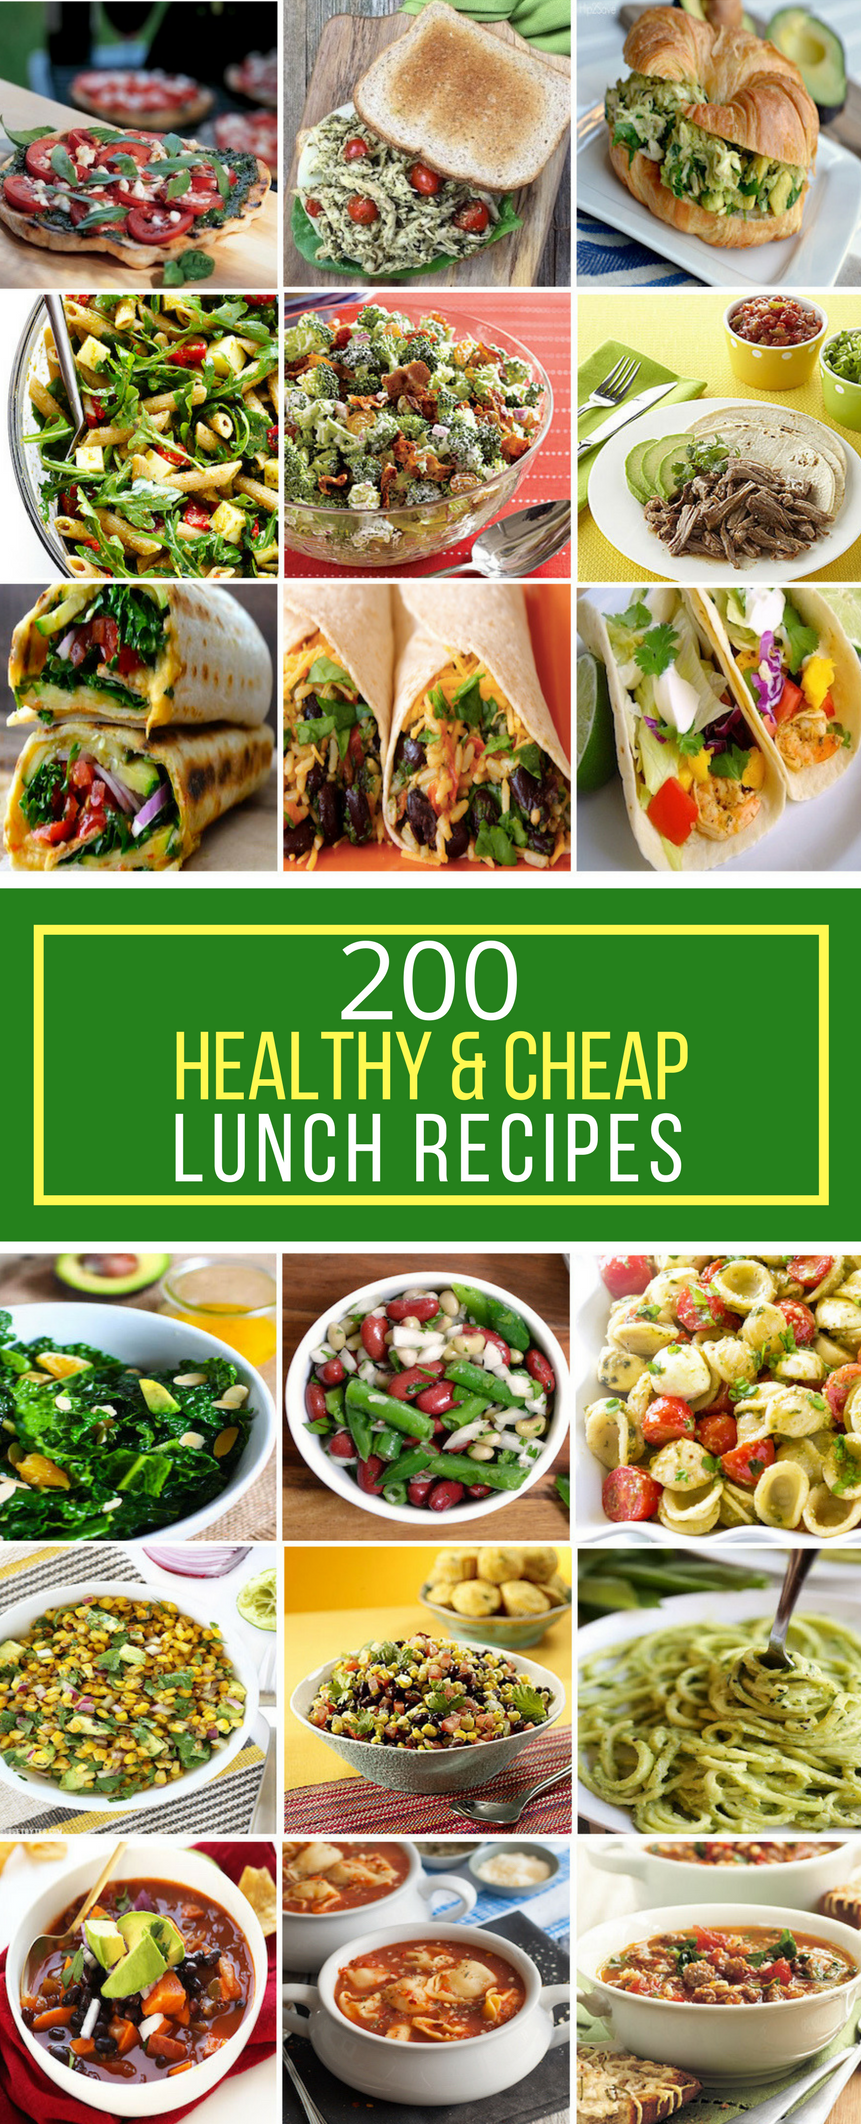 200 healthy & cheap lunch recipes - prudent penny pincher